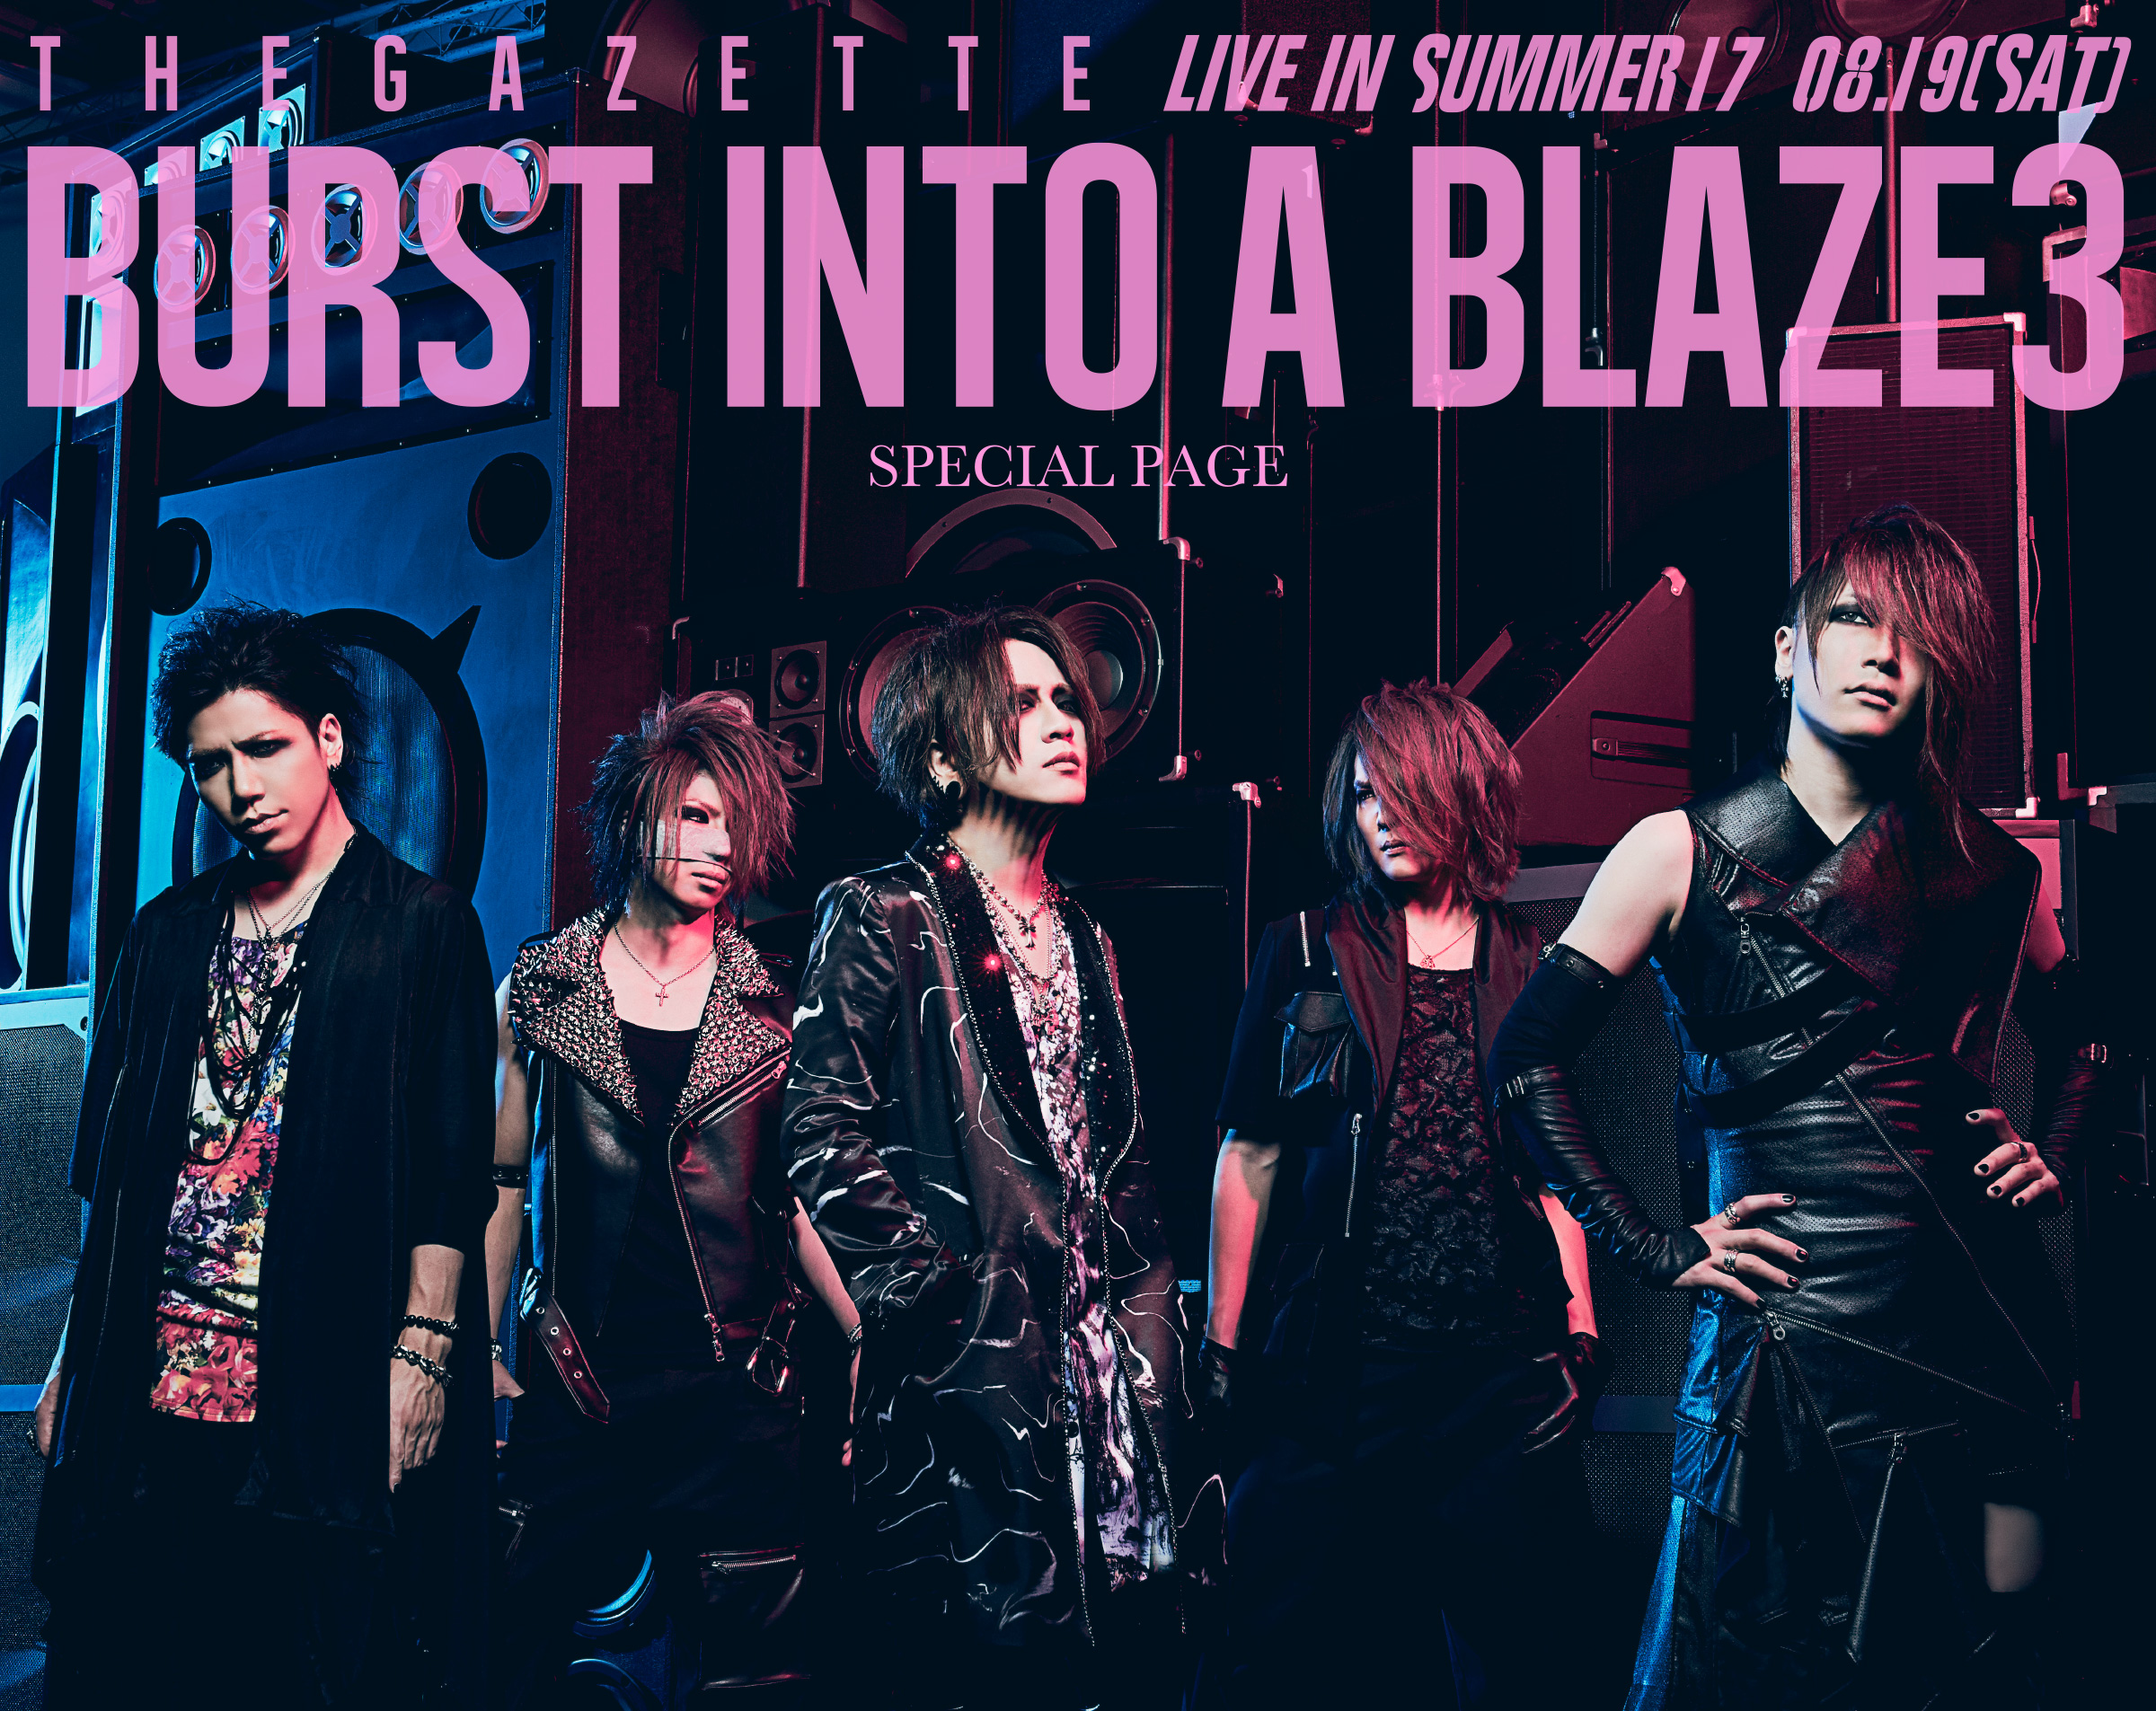 LIVE IN SUMMER 17「BURST INTO A BLAZE 3 」